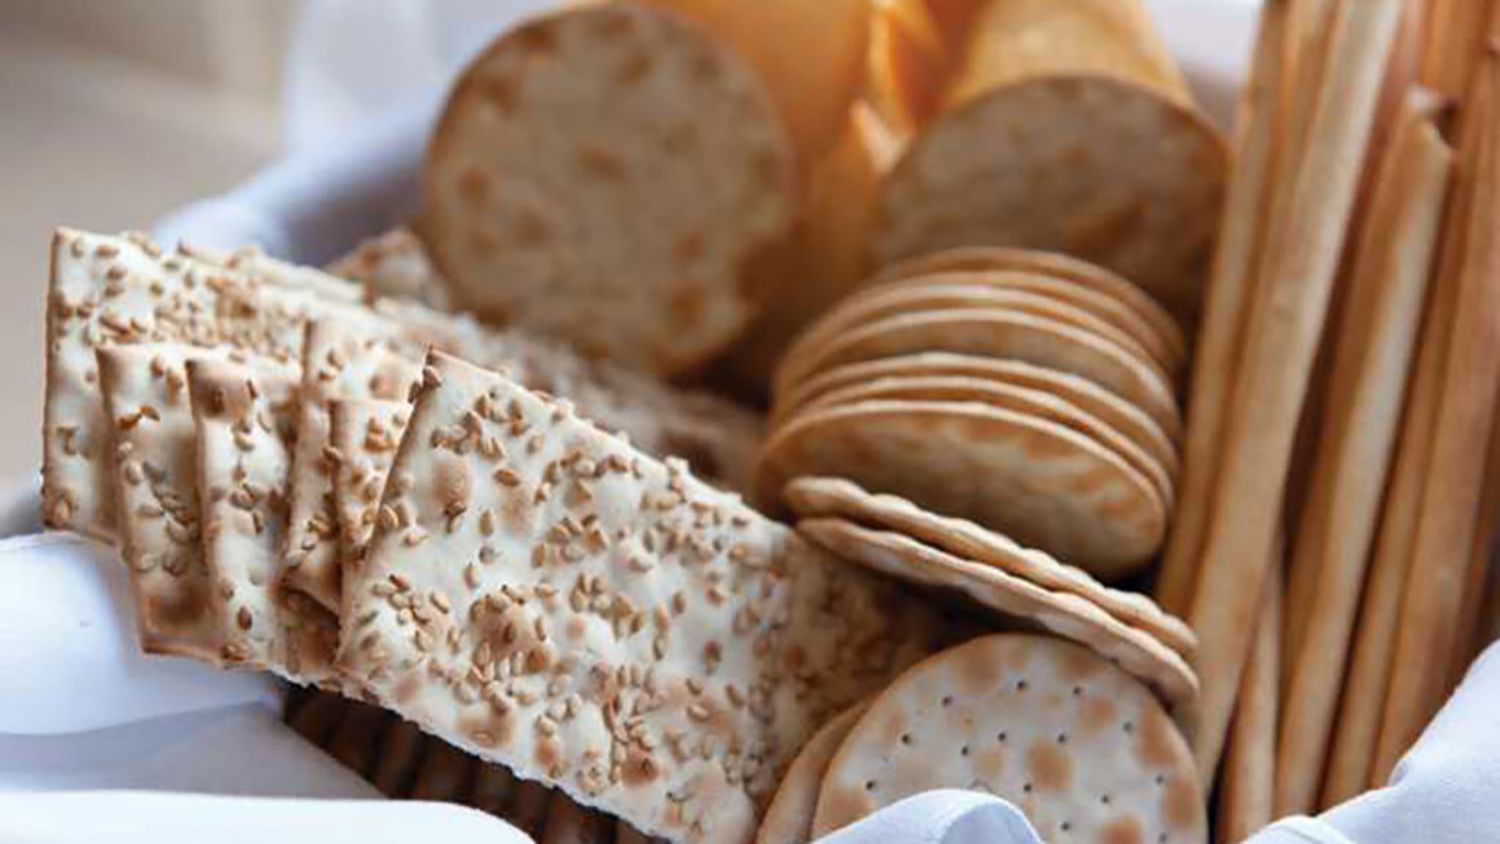 a variety of crackers in a basket